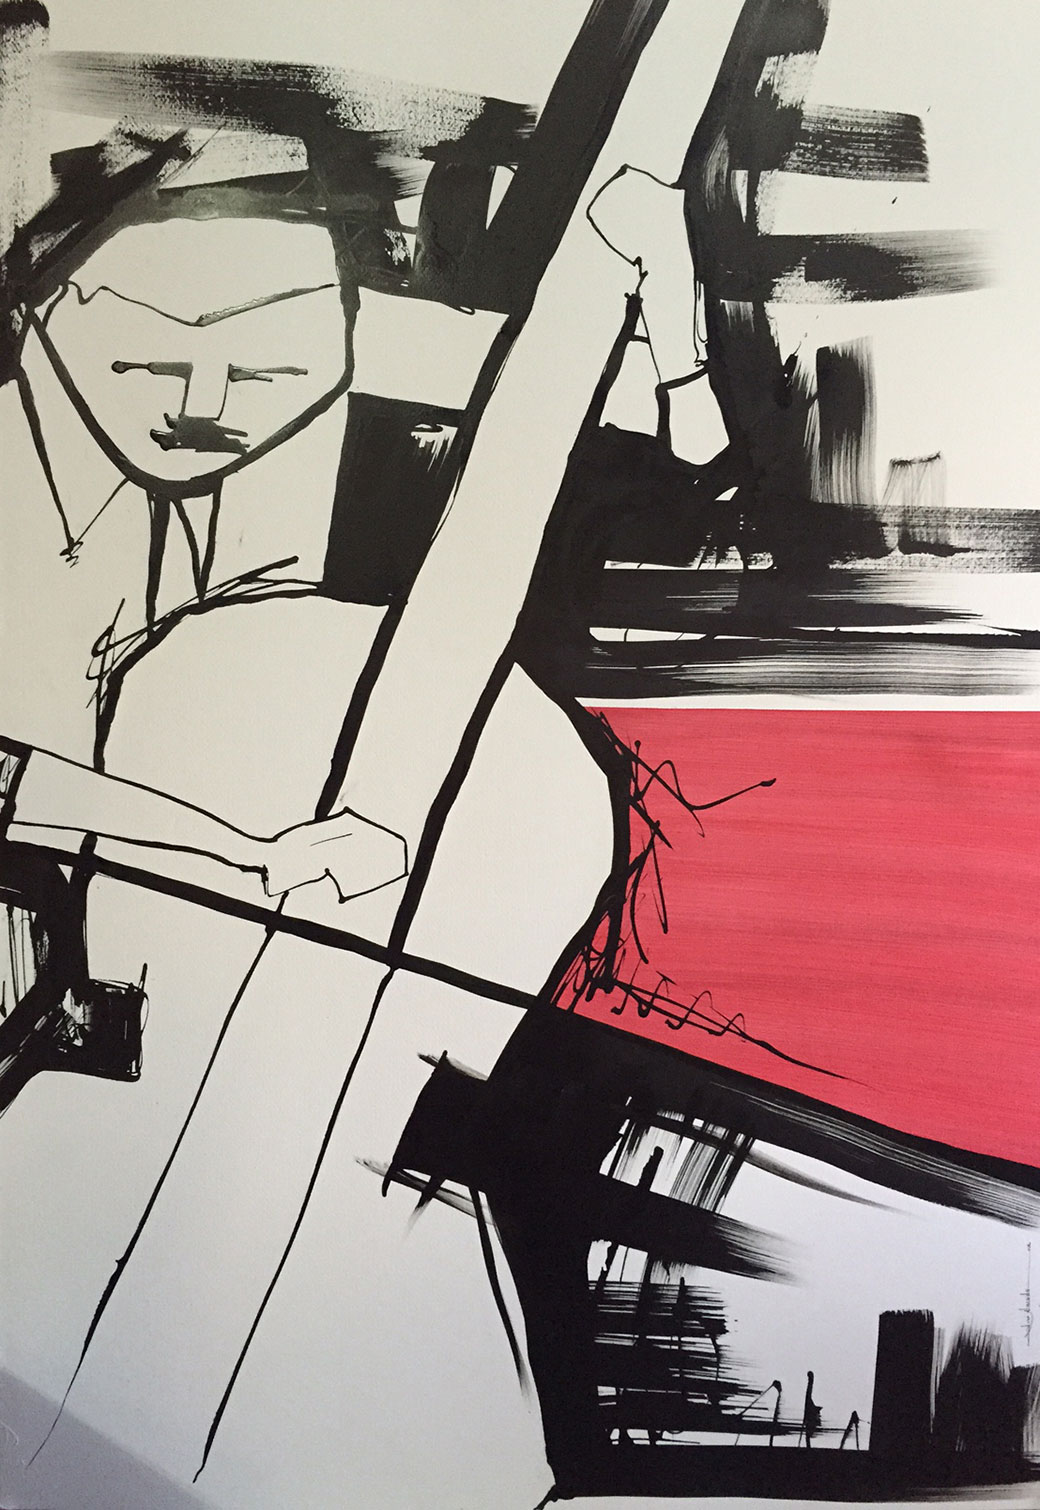 red-jazz-1-2-(-100x80cm)